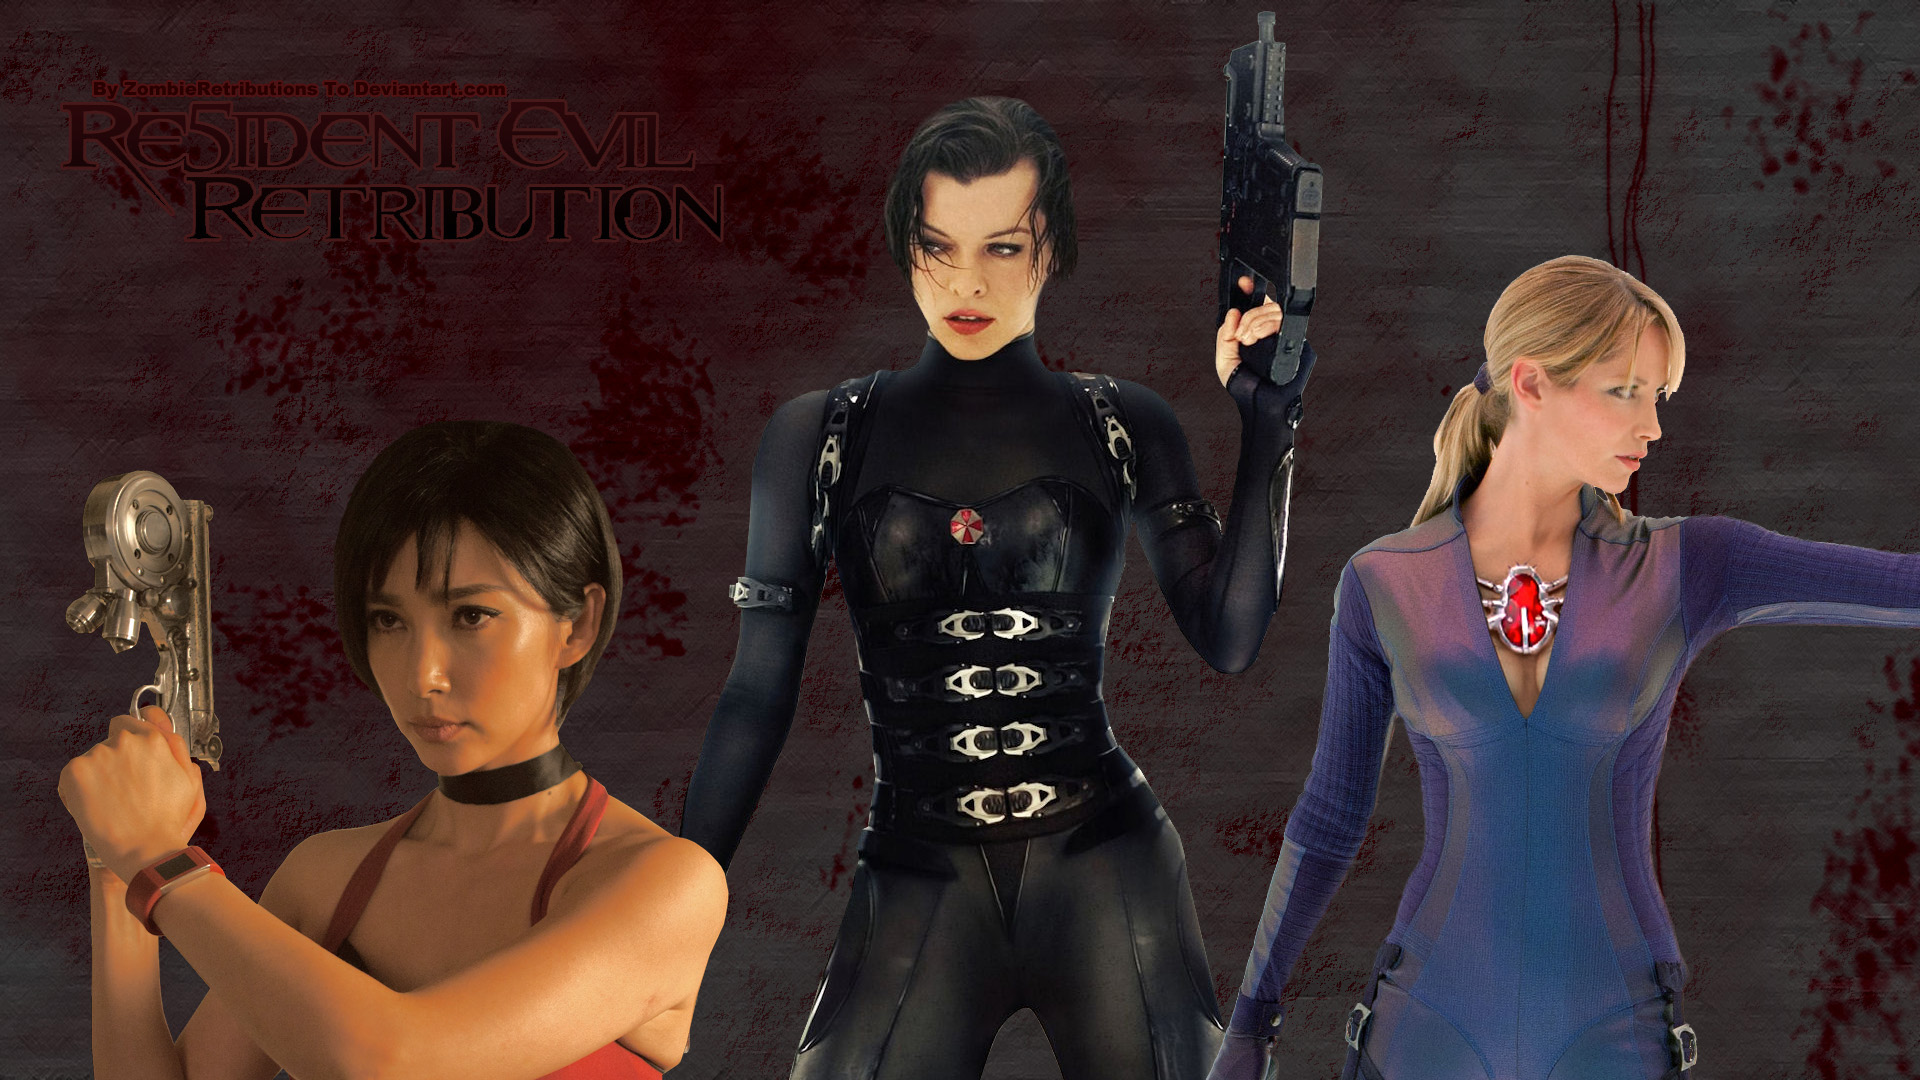 Movie Review Of Resident Evil 5 Stultification Two Black Haired Girls